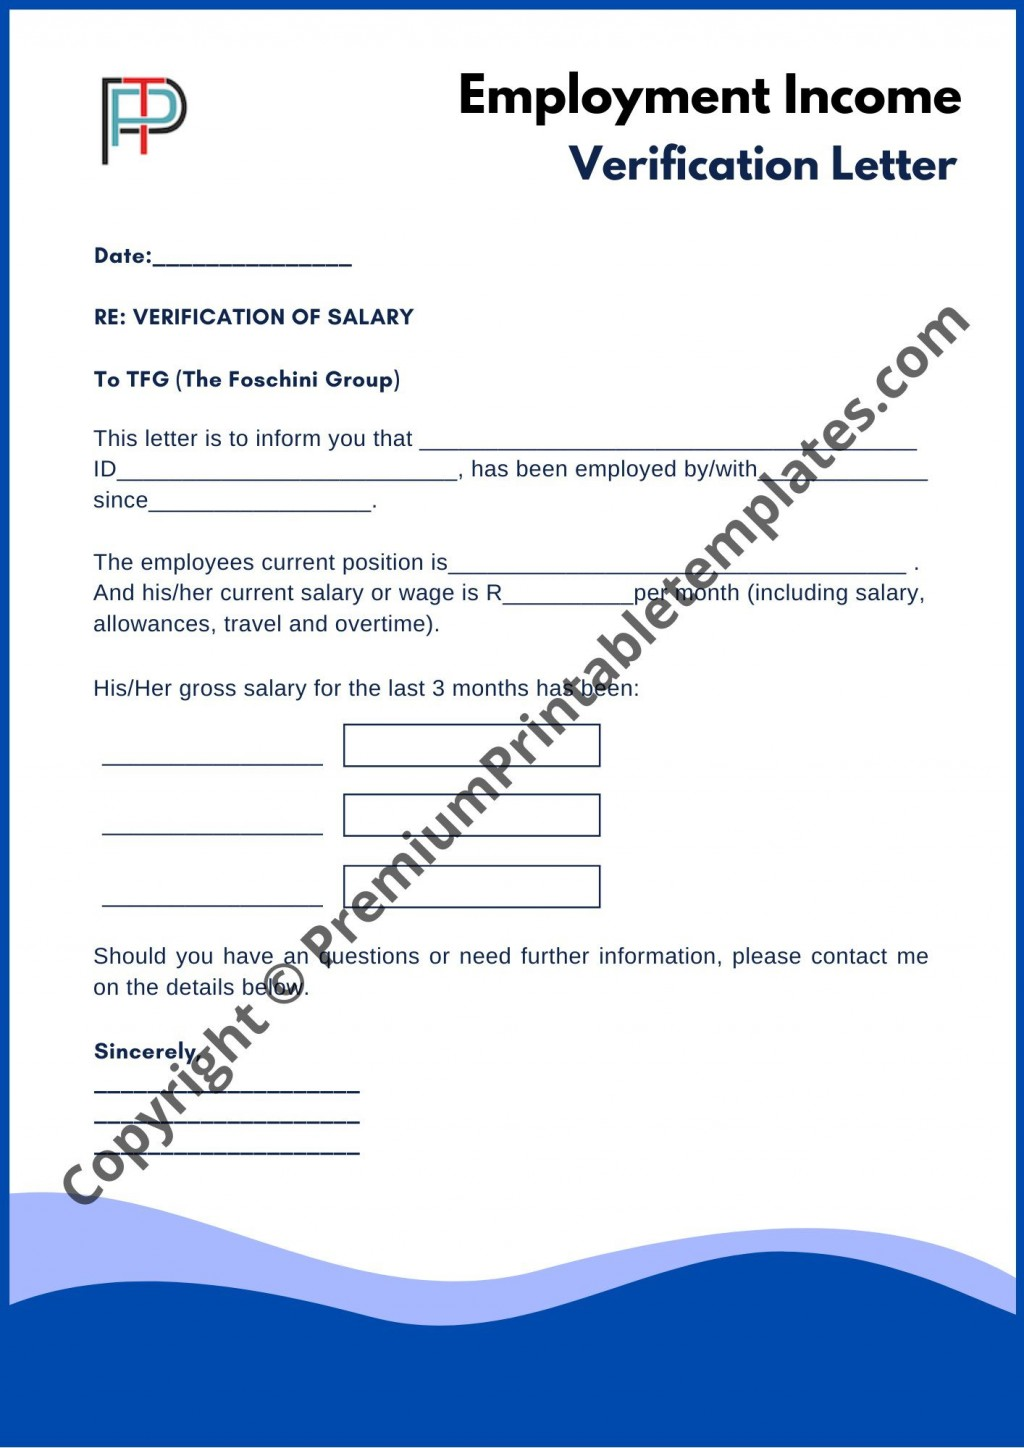 003 Stupendou Income Verification Letter Template Highest Clarity  Word From Employer Proof OfLarge